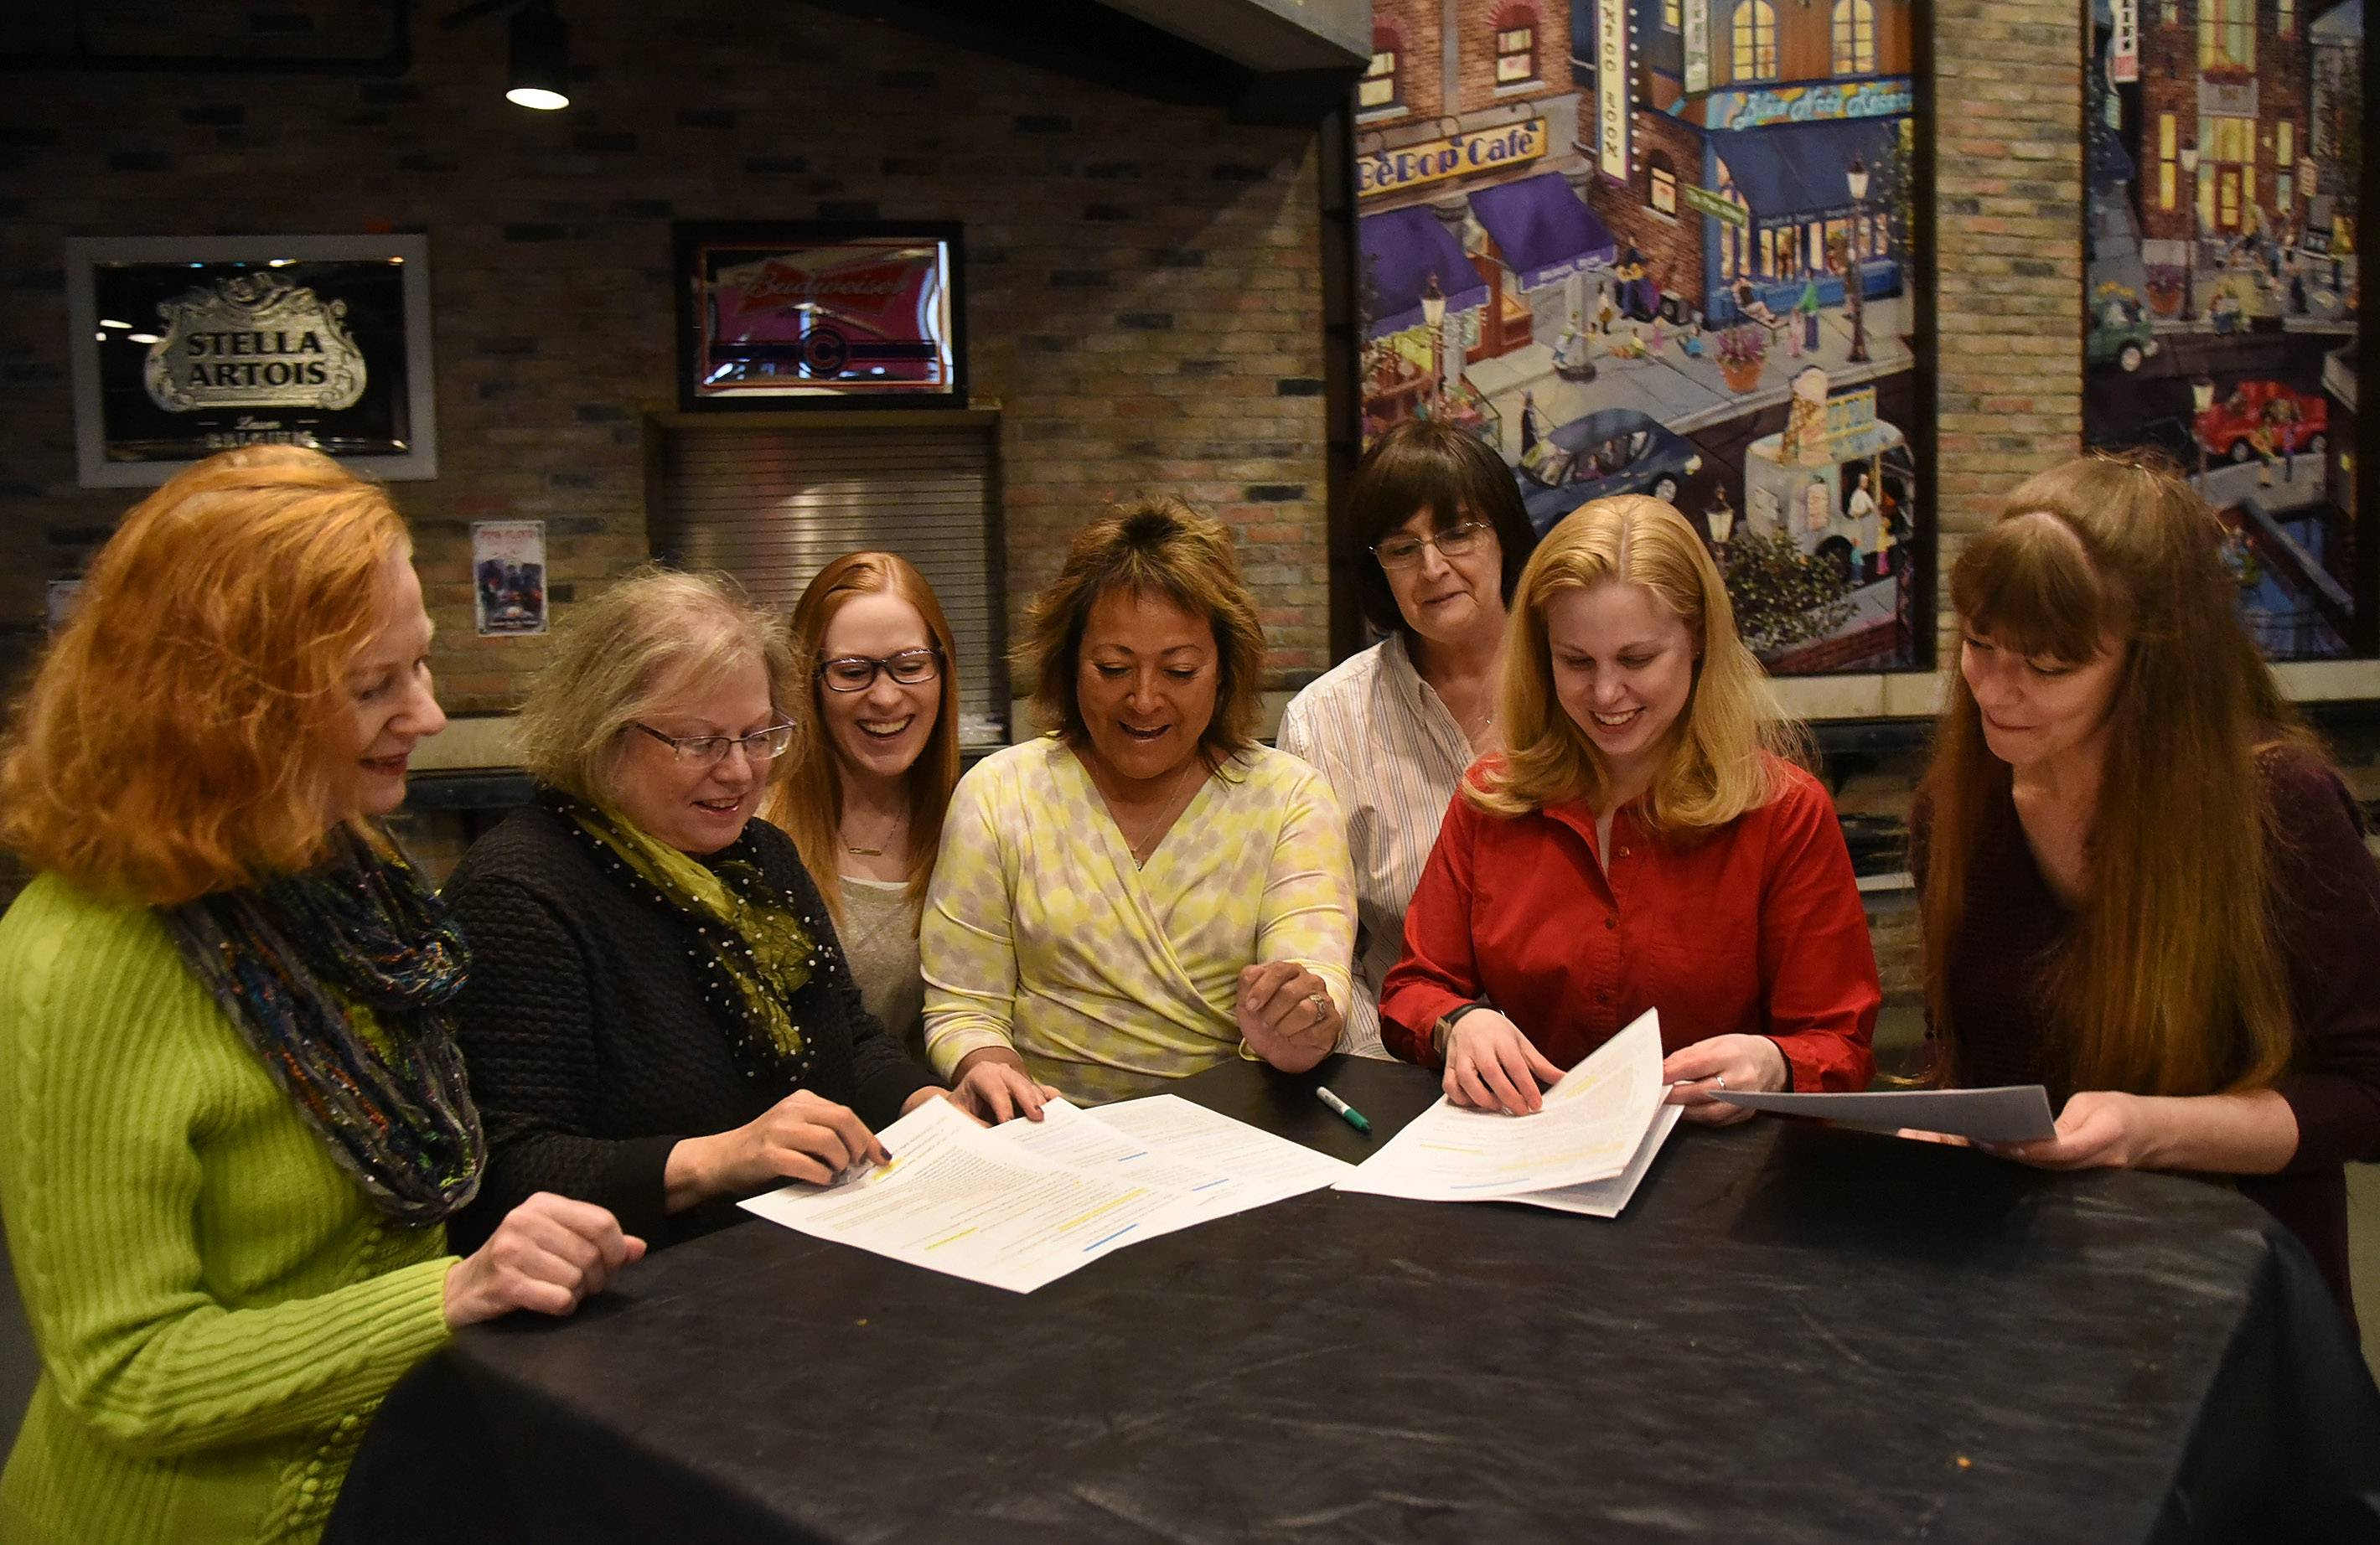 From left, Jacqui Neurauter, Linda Schneider, Nicole Nicioli, Margo Gomez-Berzins, Rana Michaels and Michelle Kukla talk over the agenda for their Empowerment Summit with Jamie Barr, director of marketing and events for Durty Nellie's.